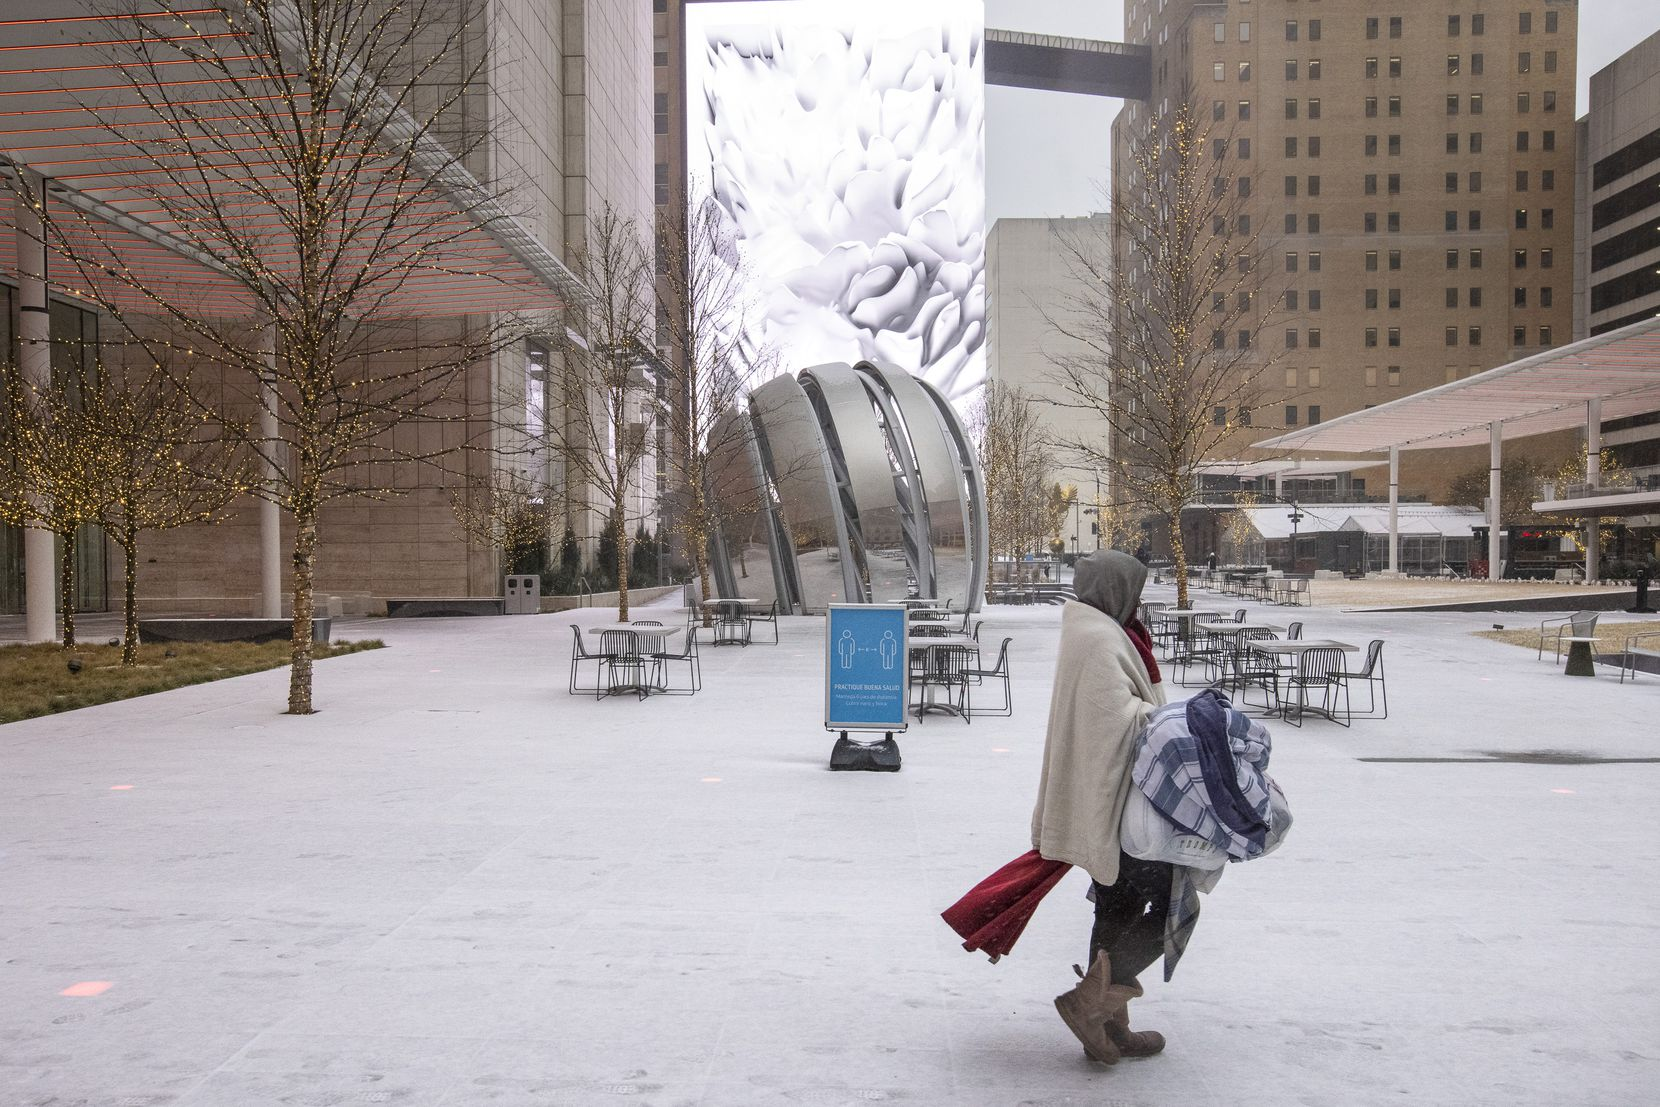 A person walks through snow past AT&T Discovery District in Downtown Dallas on Sunday, Feb. 14, 2021. The region is currently under a winter storm warning.